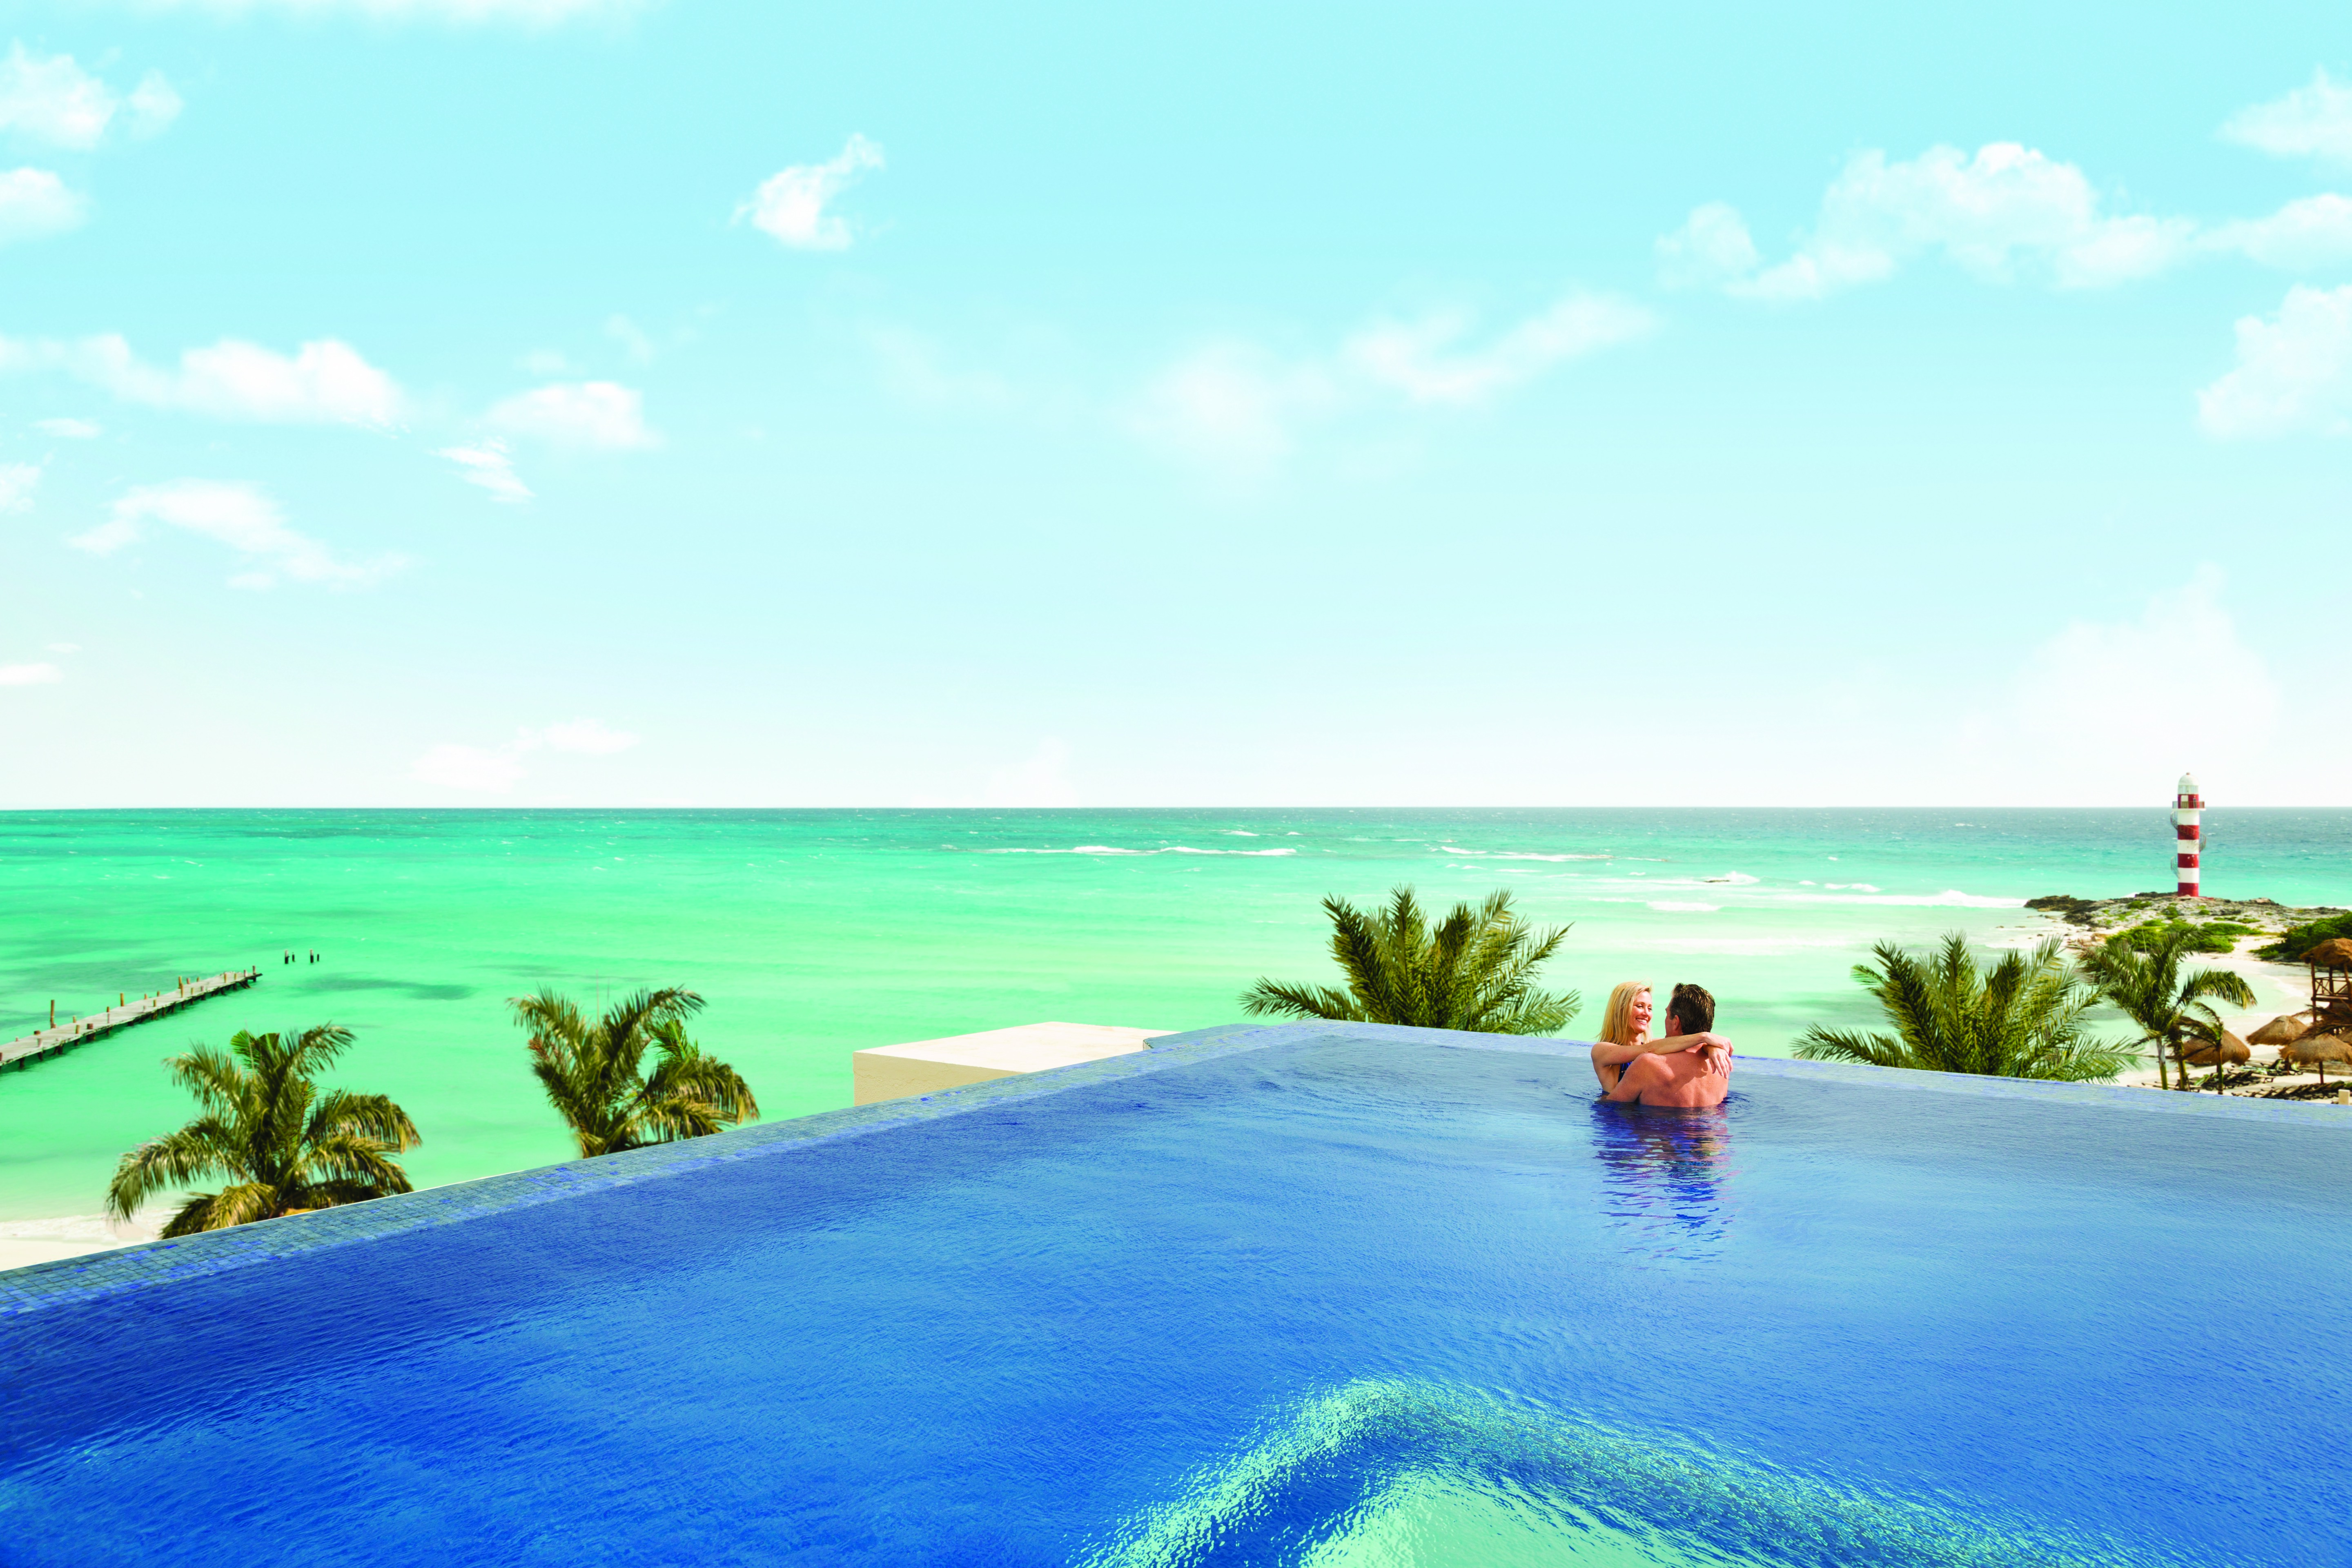 Hyatt-Ziva-Cancun-Turquoize-Rooftop-Infinity-Pool-Ocean-Couple-6